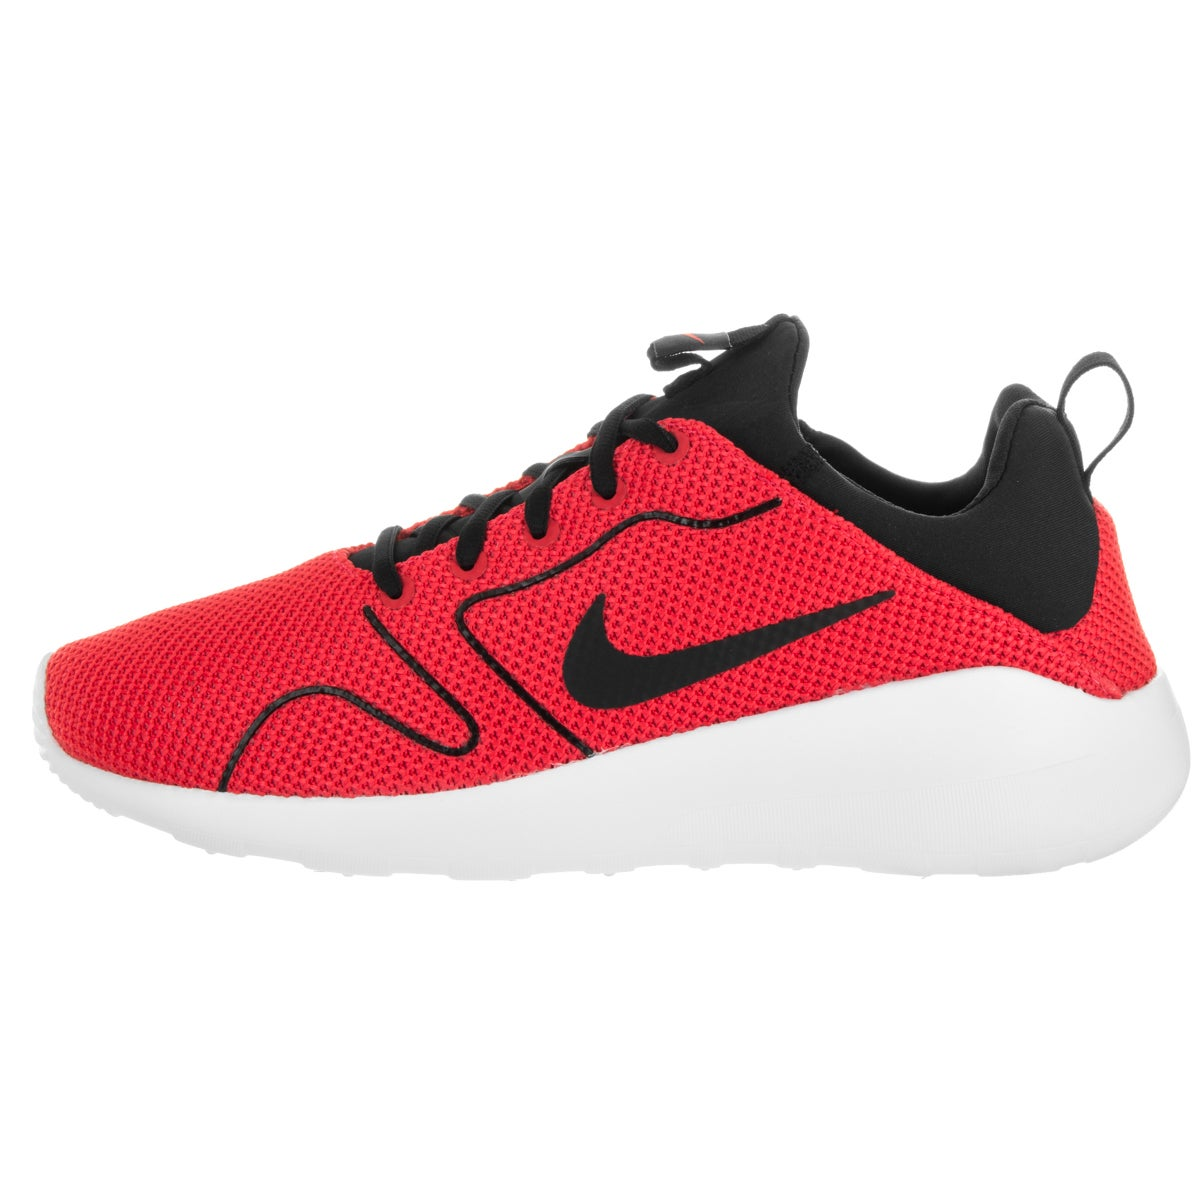 f793d6666210 Shop Nike Men s Kaishi 2.0 SE Red Mesh Running Shoes - Free Shipping Today  - Overstock - 13477908